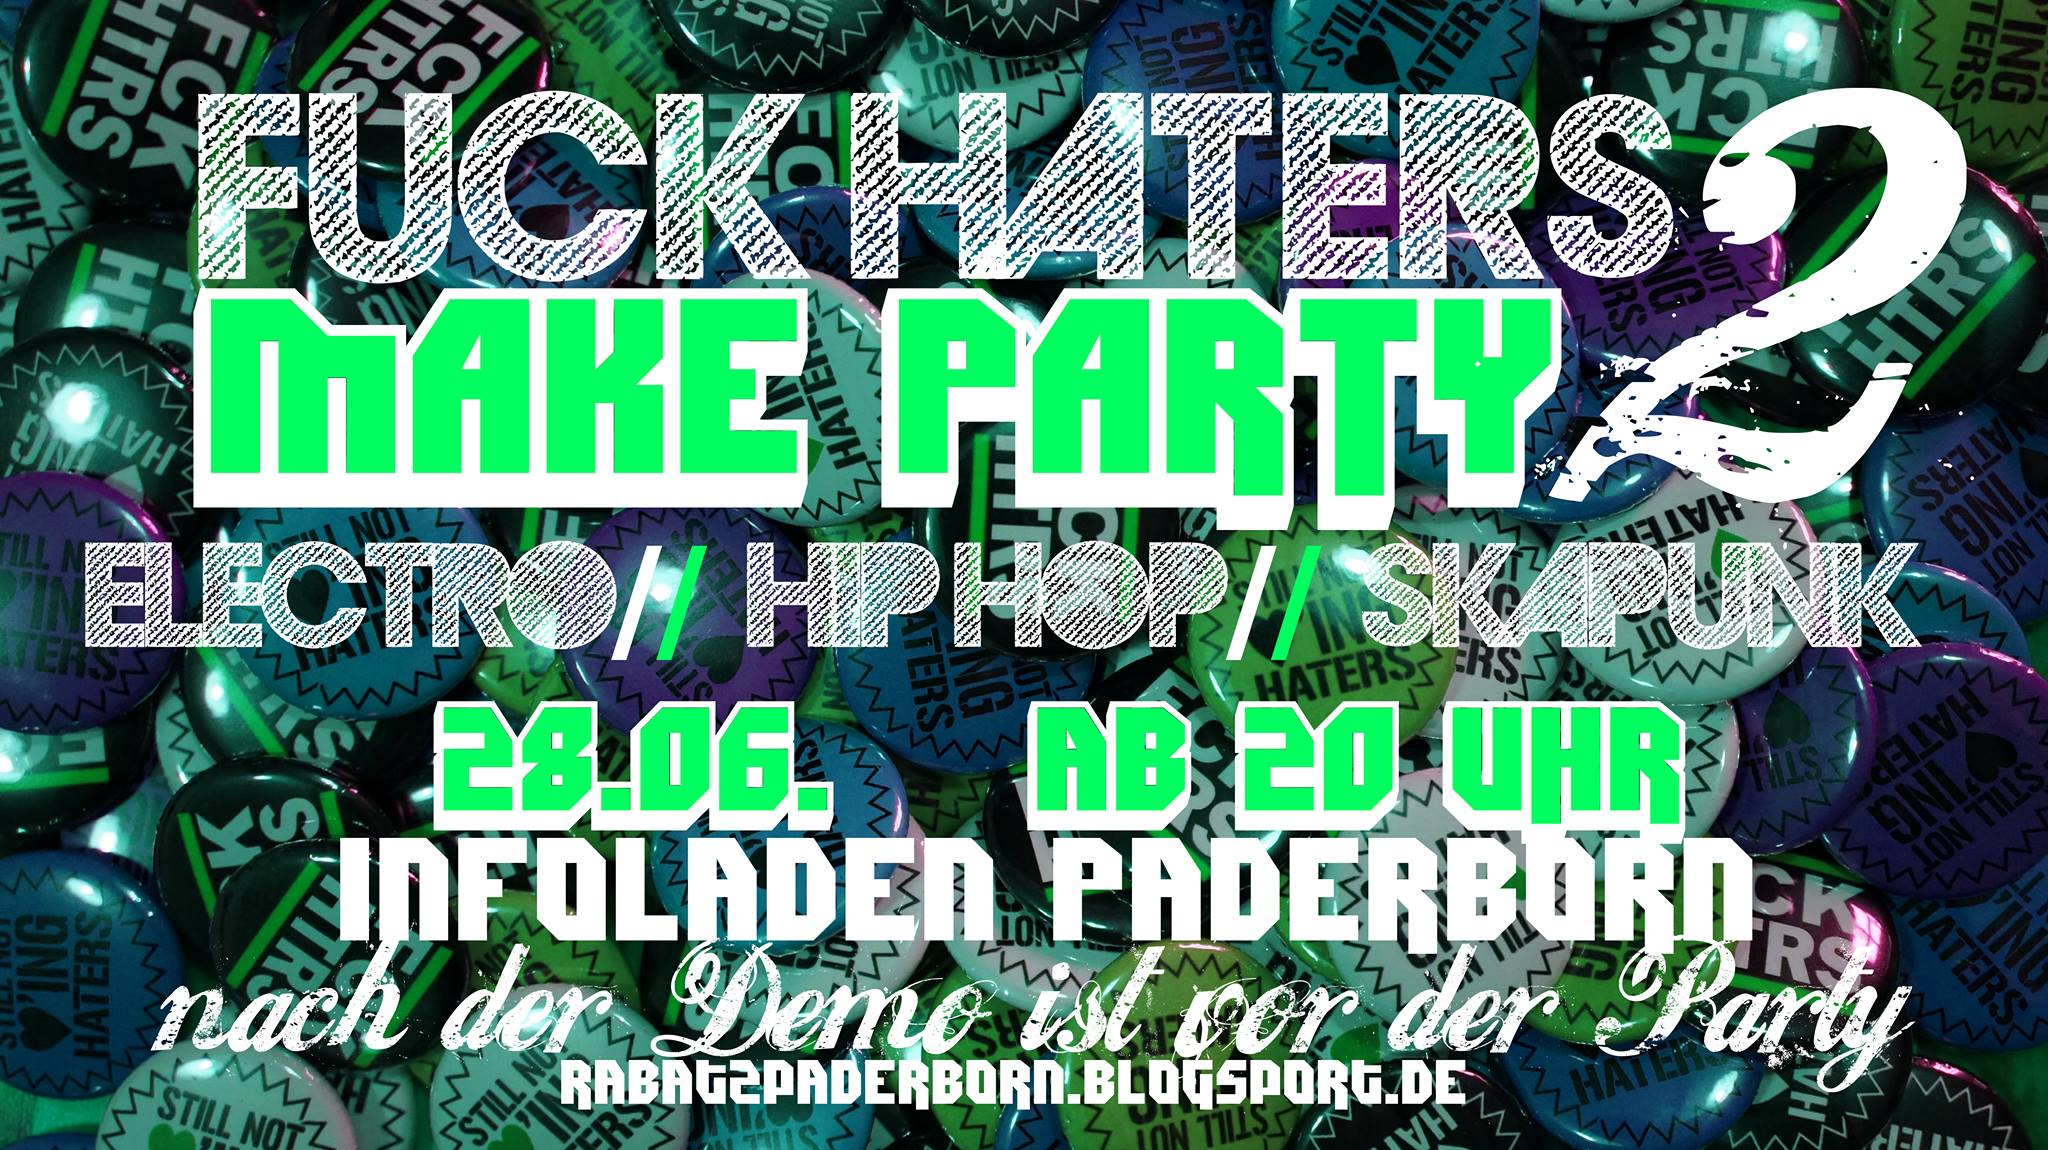 Fuck Haters Make Party 2